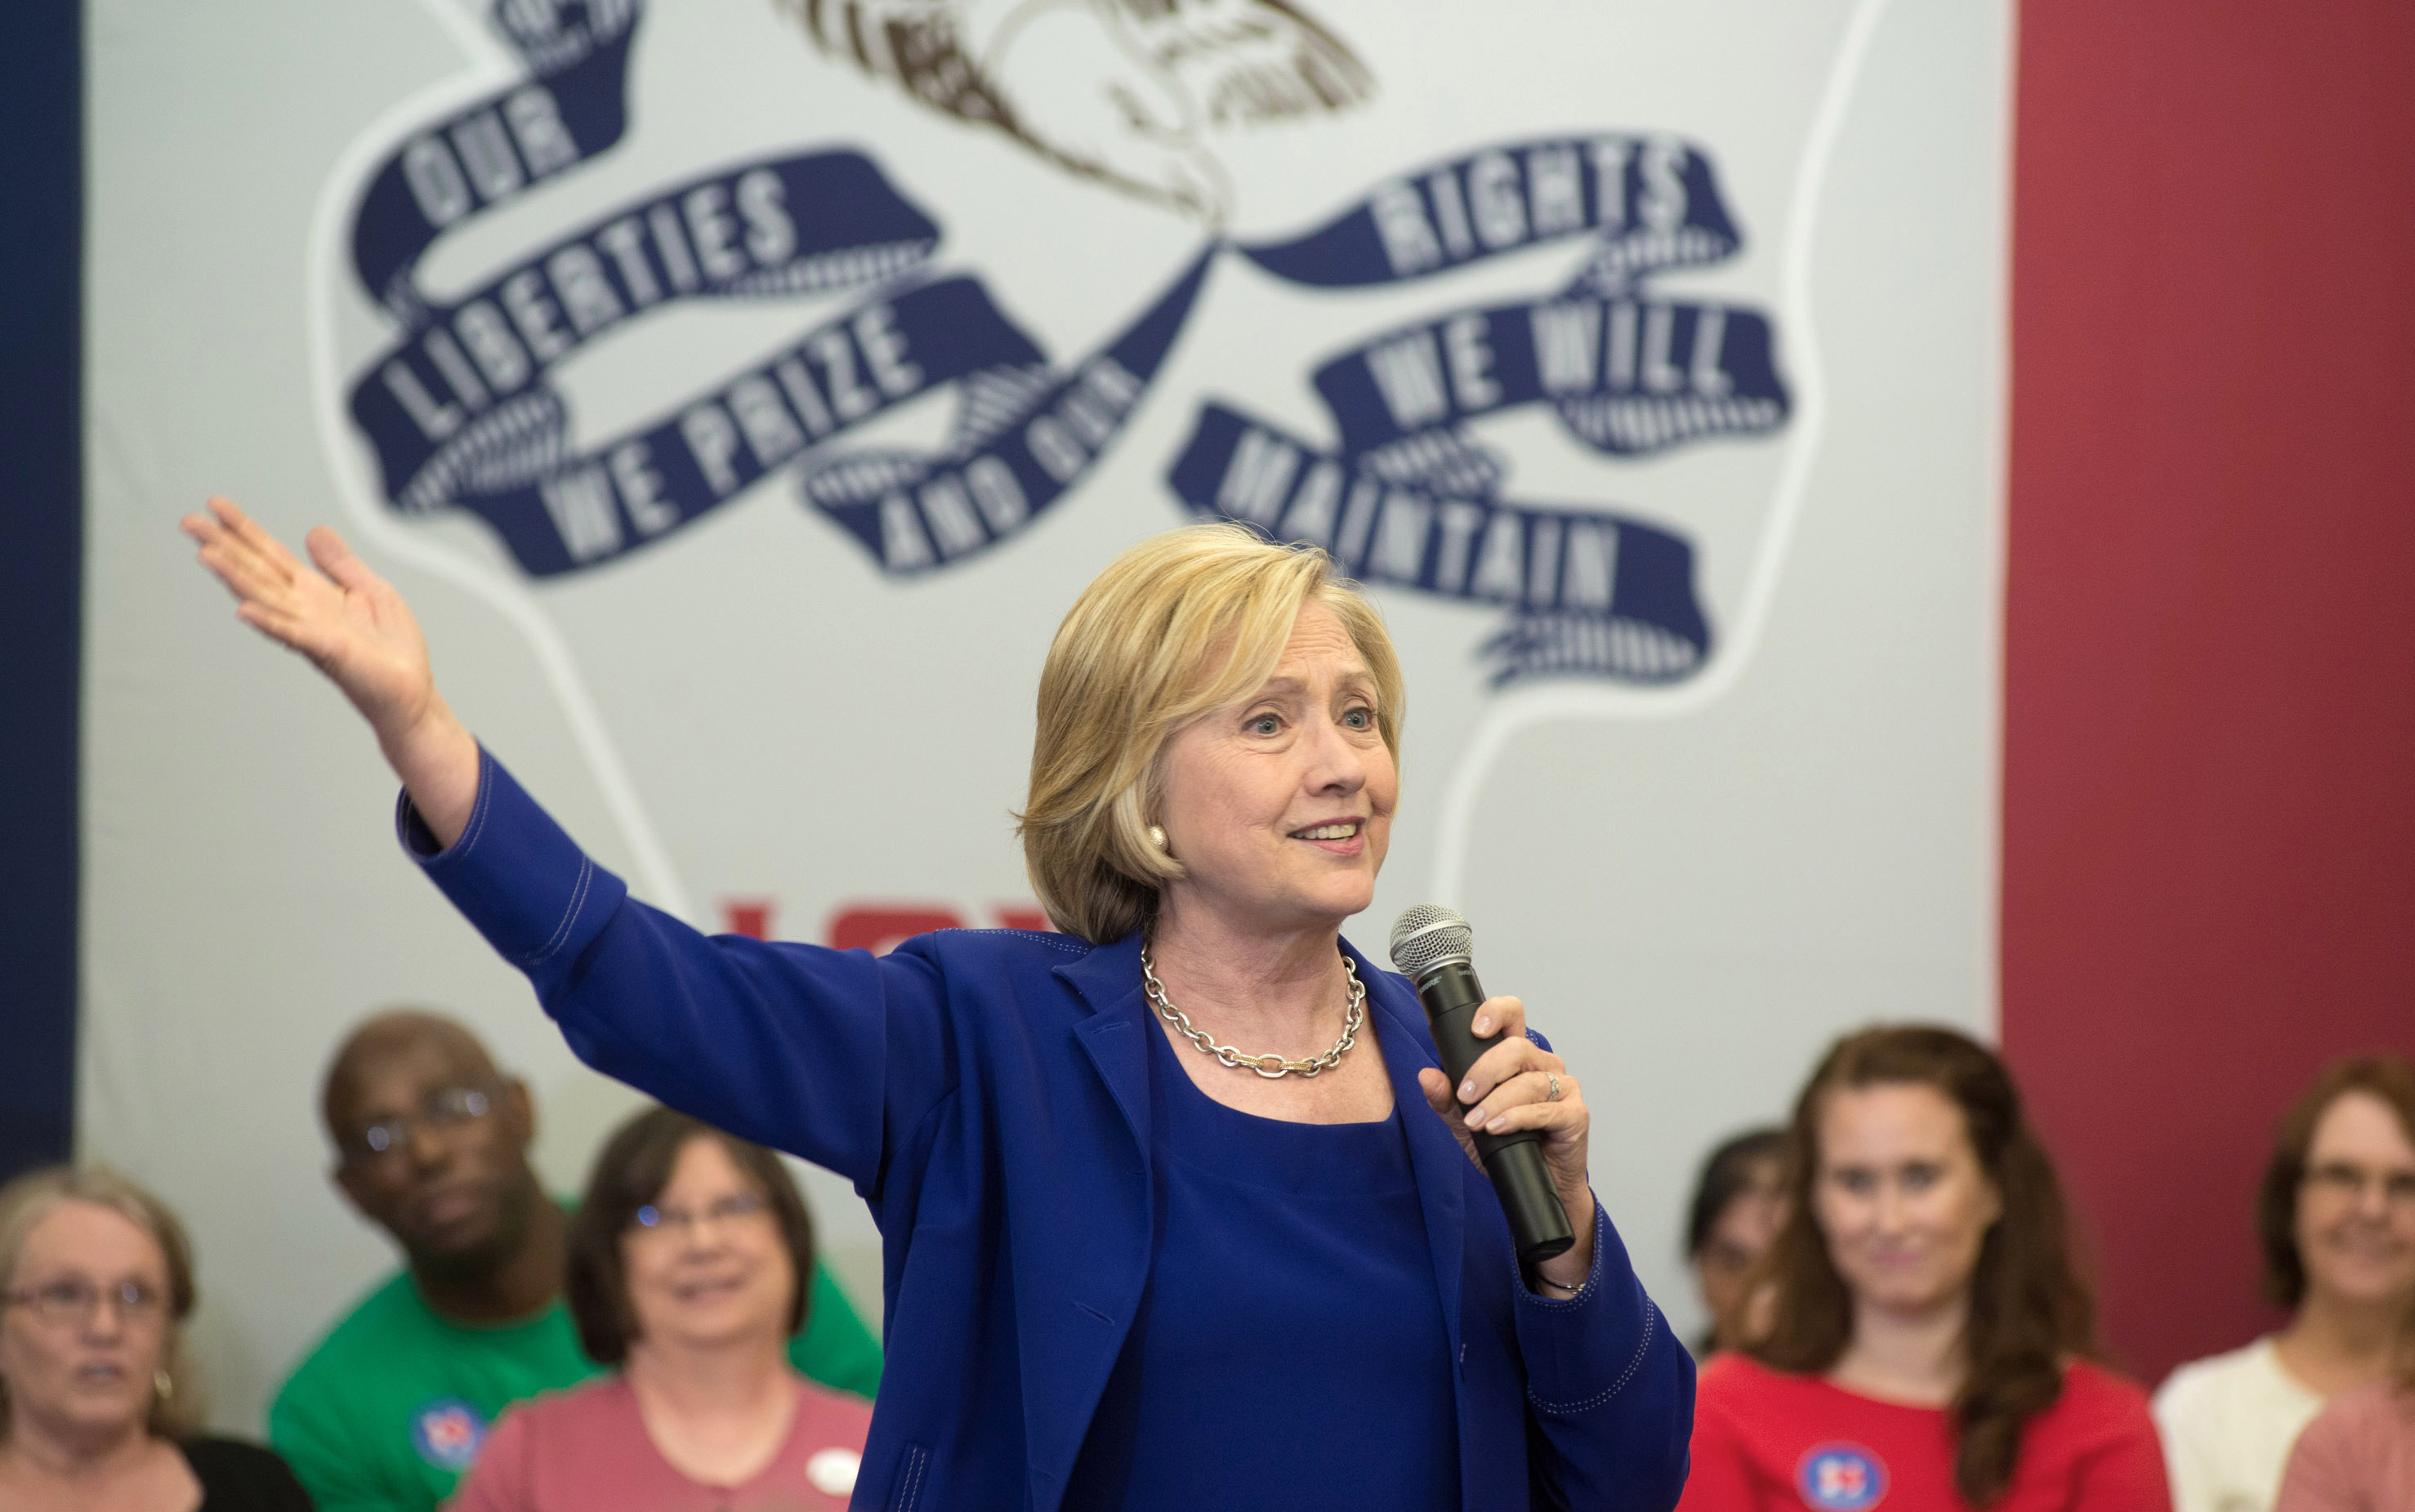 Former Secretary of State and presidential candidate Hillary Clinton addresses supporters at an organizational rally at the Iowa City Public Library in Iowa City, Iowa, on July 7, 2015.